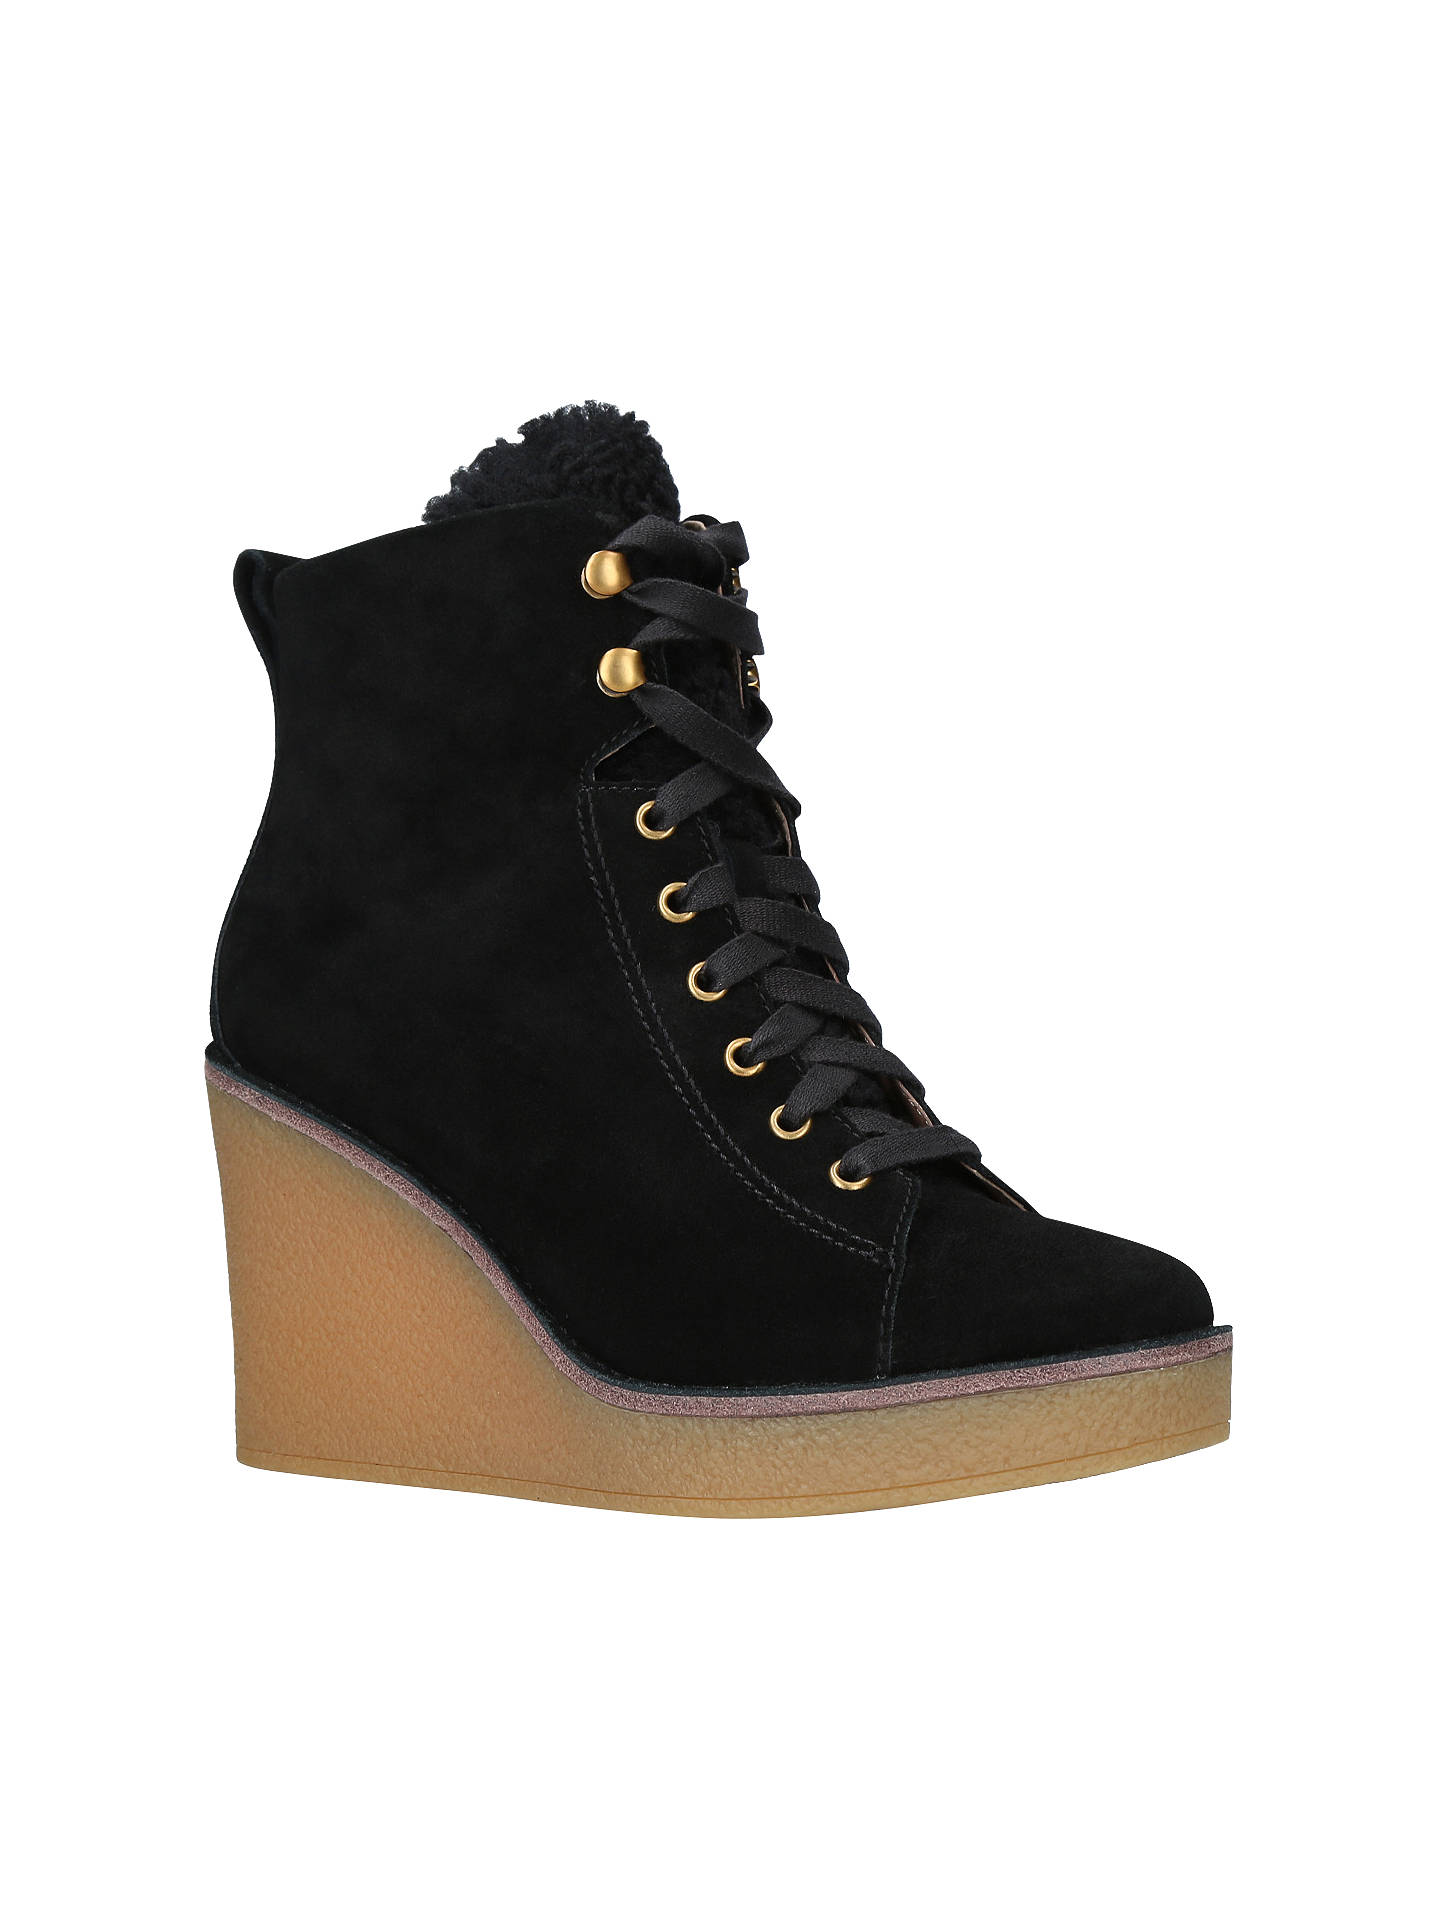 BuyUGG Kiernan Wedge Heel Ankle Boots, Black Suede, 3 Online at johnlewis.com